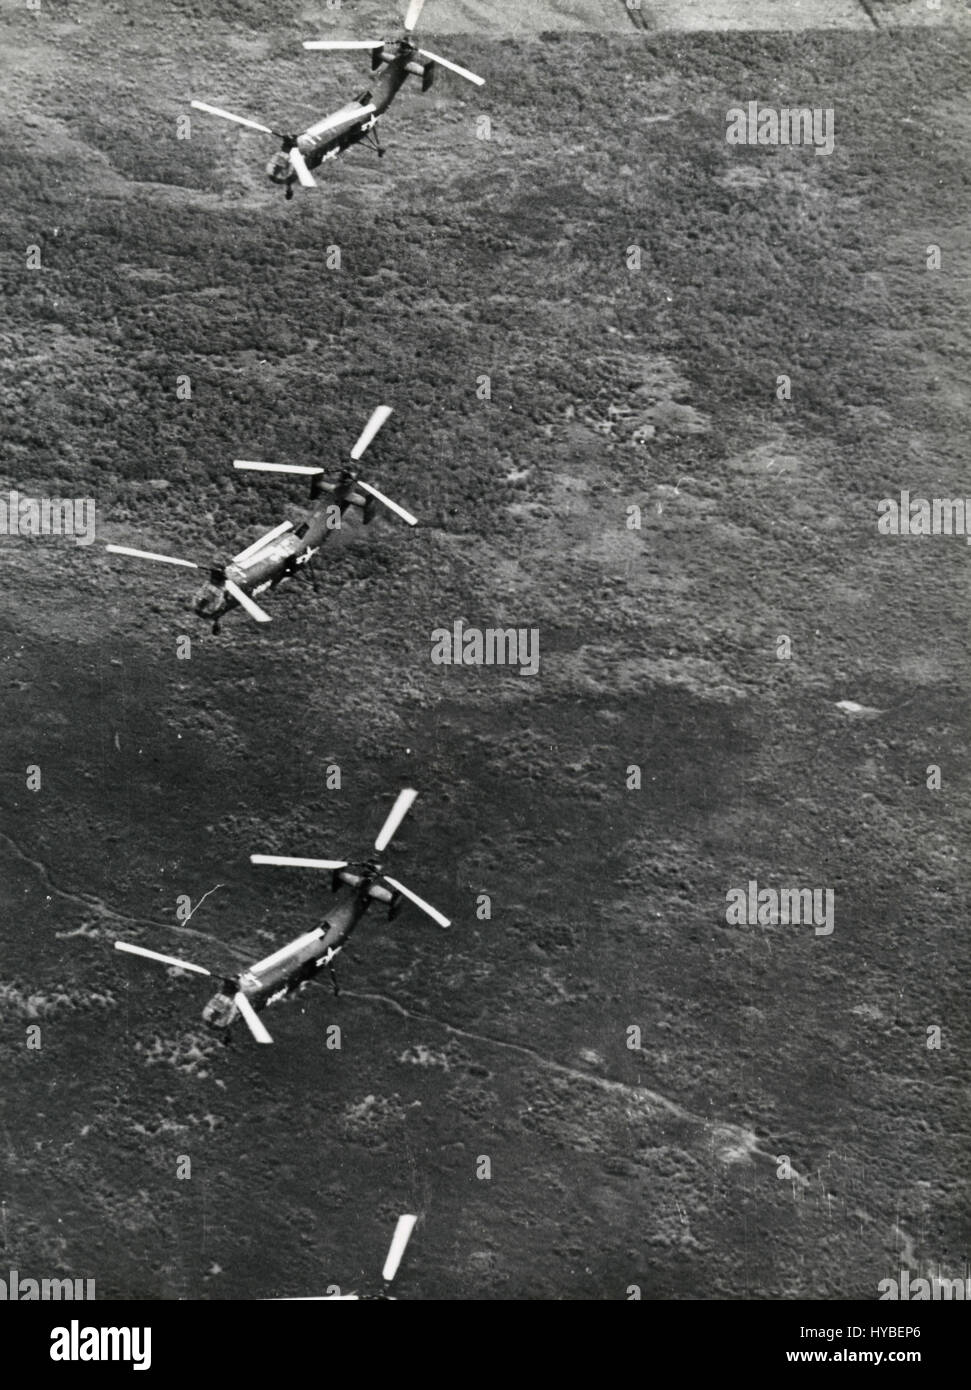 US Air Force helicopters, Vietnam - Stock Image